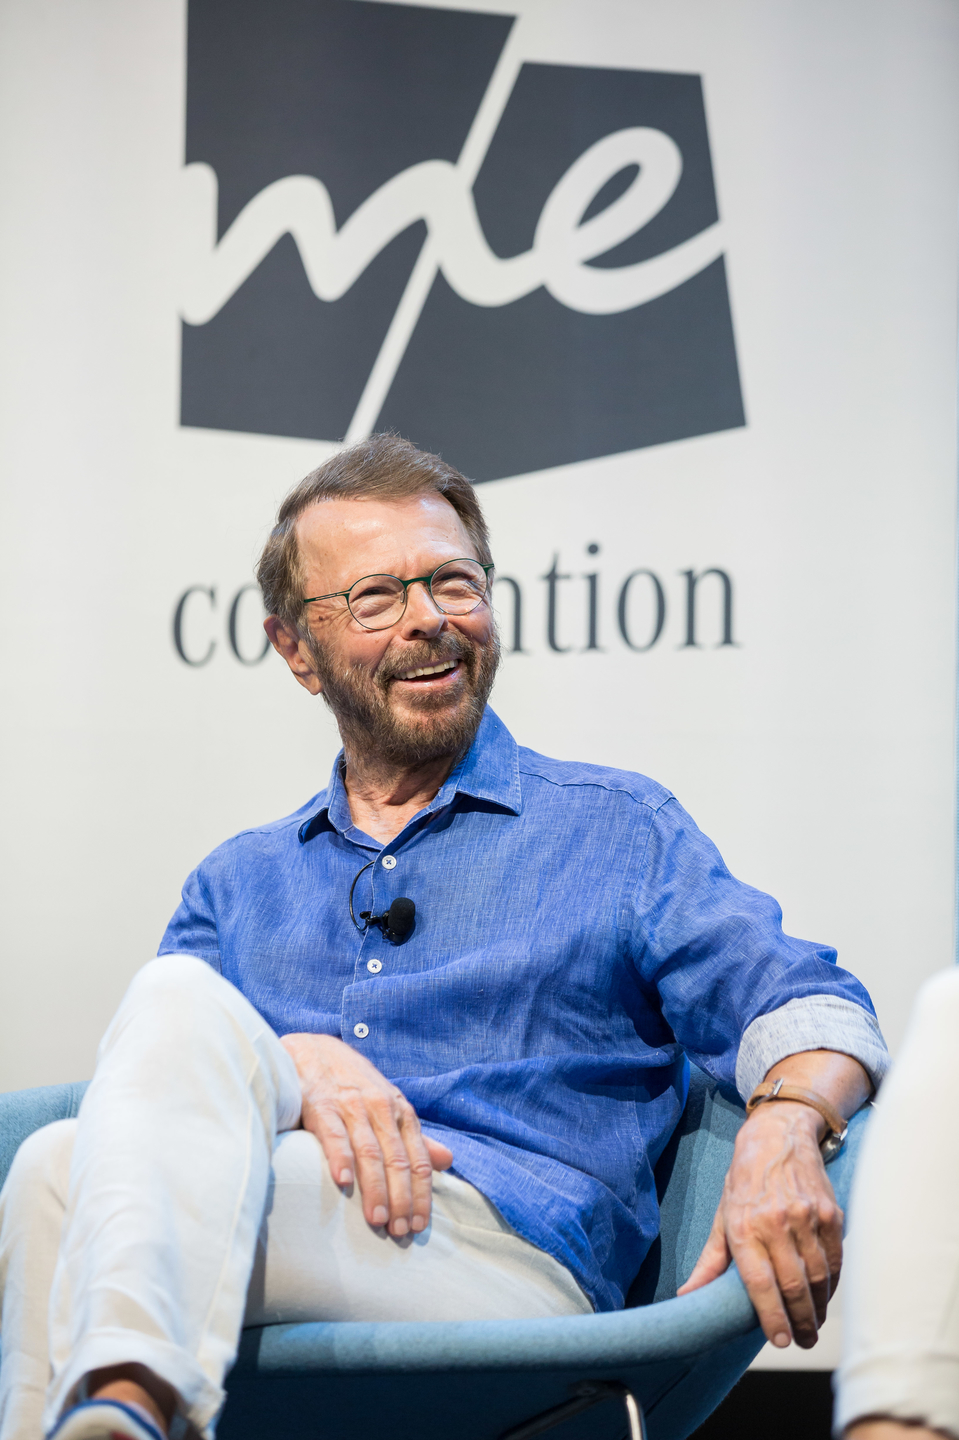 ABBA co-founder and singwriter, Björn Ulvaeus during